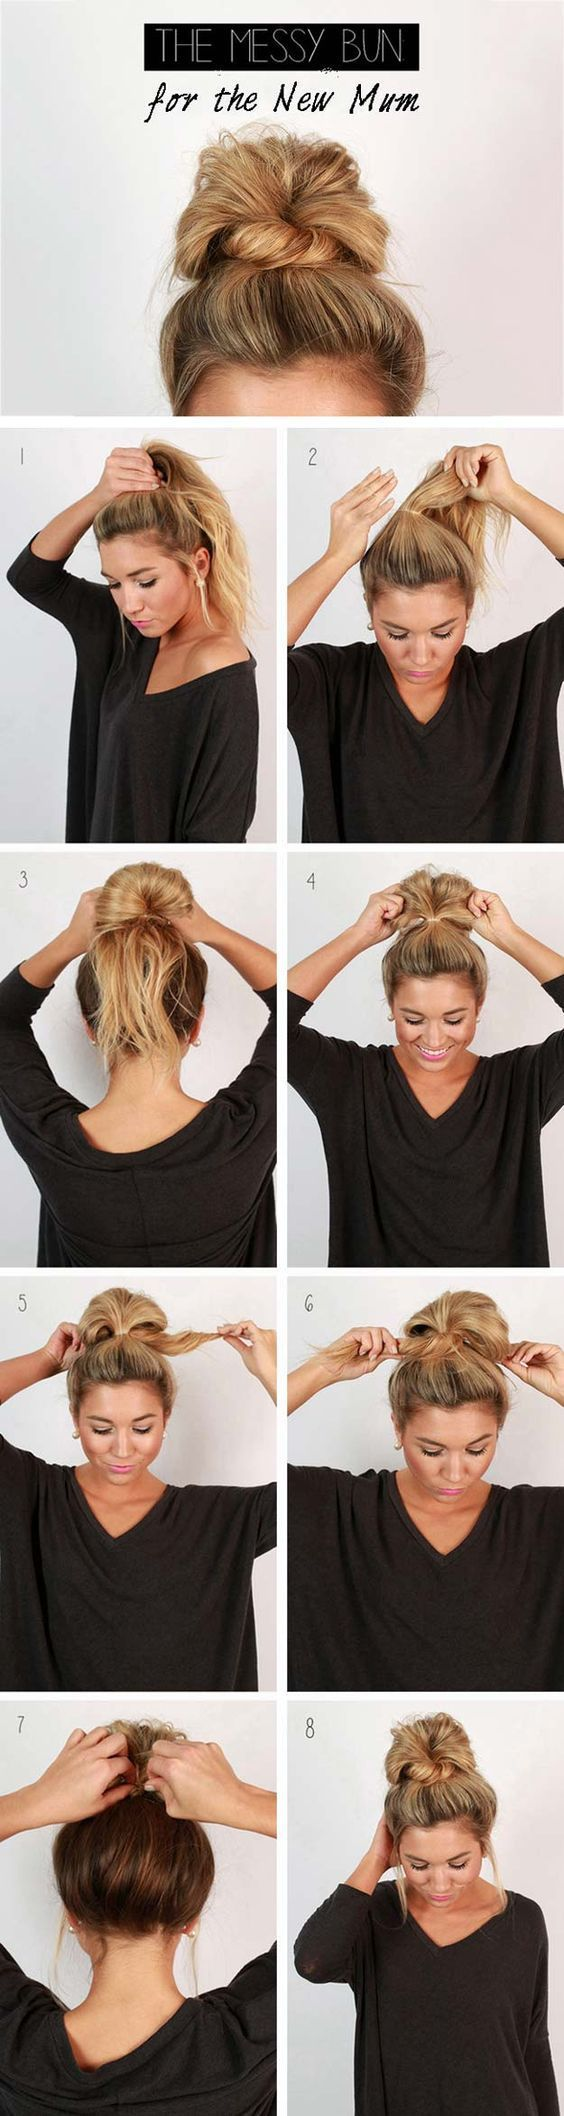 Astounding 1000 Ideas About Quick School Hairstyles On Pinterest Easy Hairstyle Inspiration Daily Dogsangcom